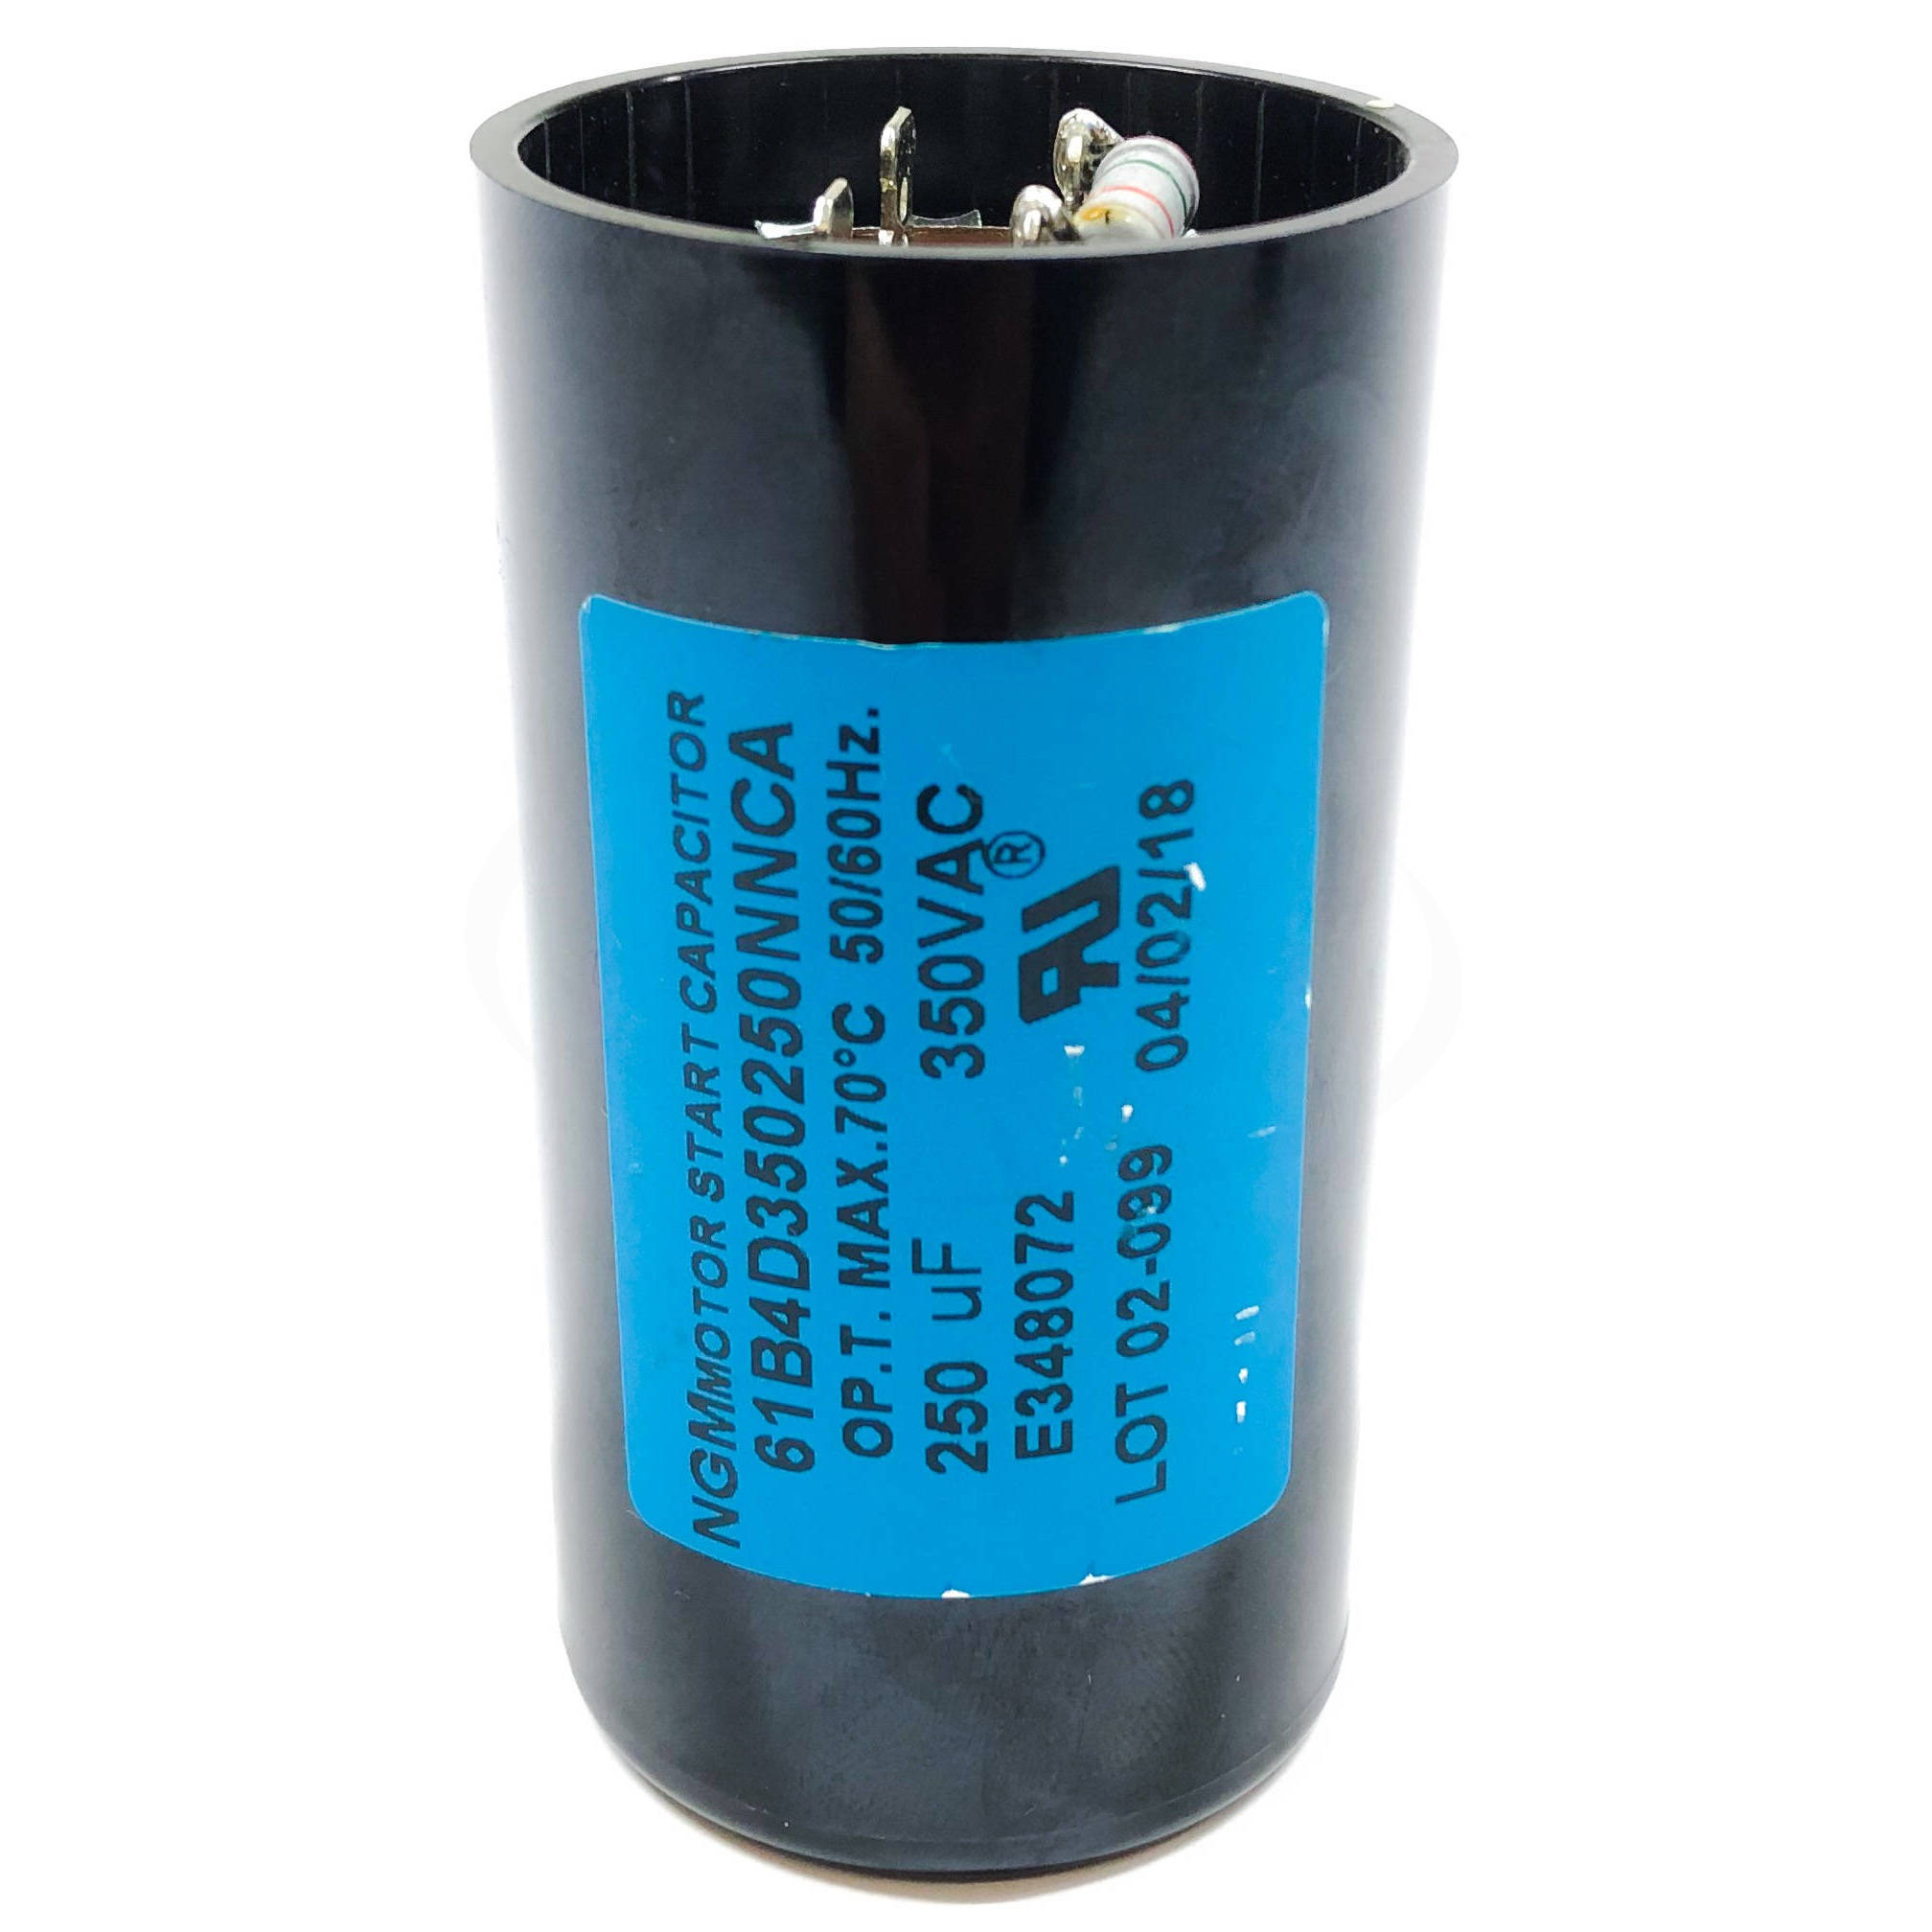 SCAP350V-250UF Techtop Start Capacitor, 350V 250uF 1